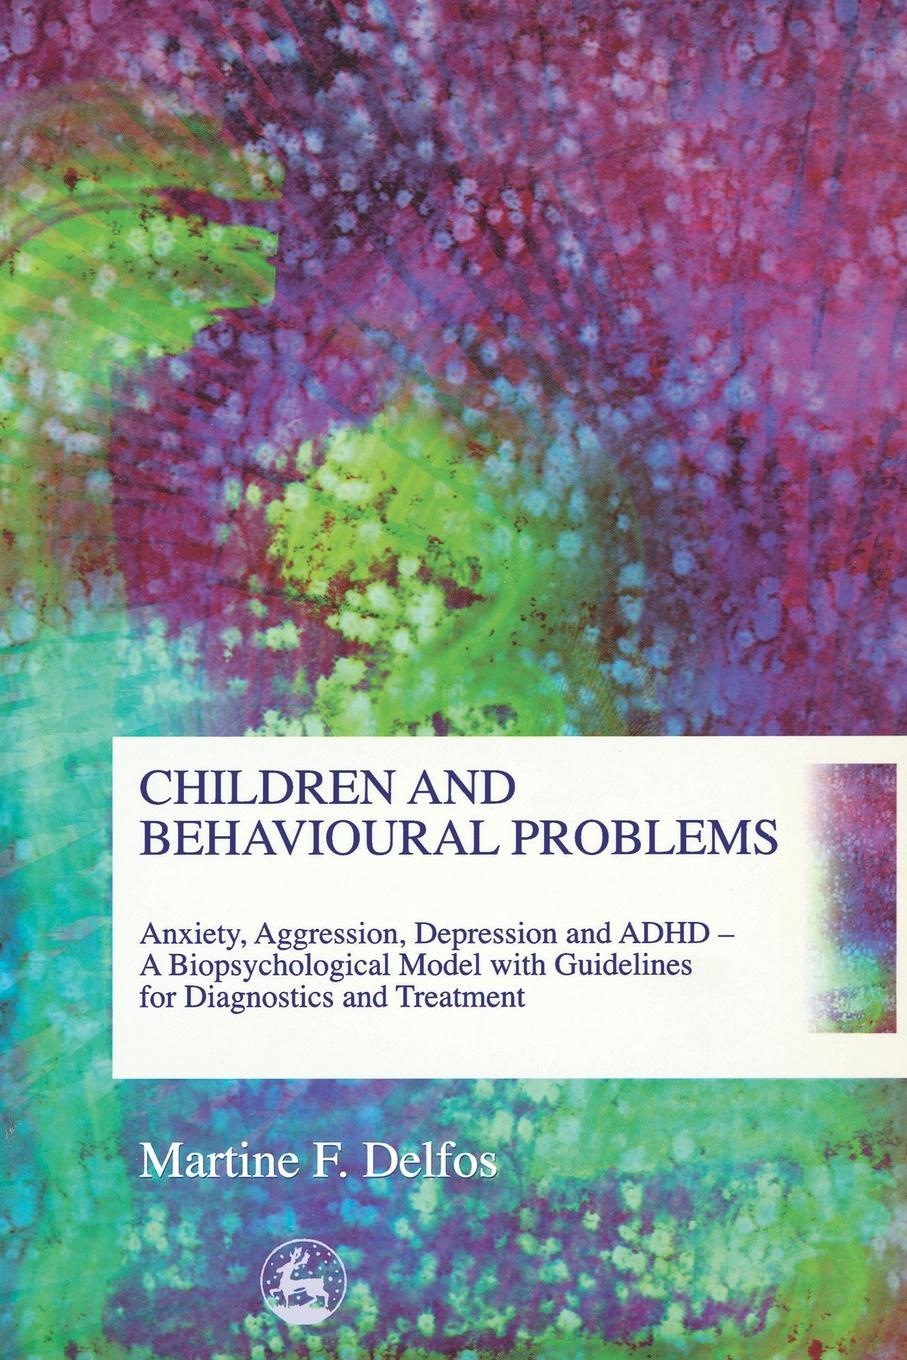 Фото - Martine F. Delfos Children and Behavioural Problems. Anxiety, Aggression, Depression and ADHD- A Biopsychological Model with Guidelines for Diagnostics and Treatment brian stretton nudging behavioural safety